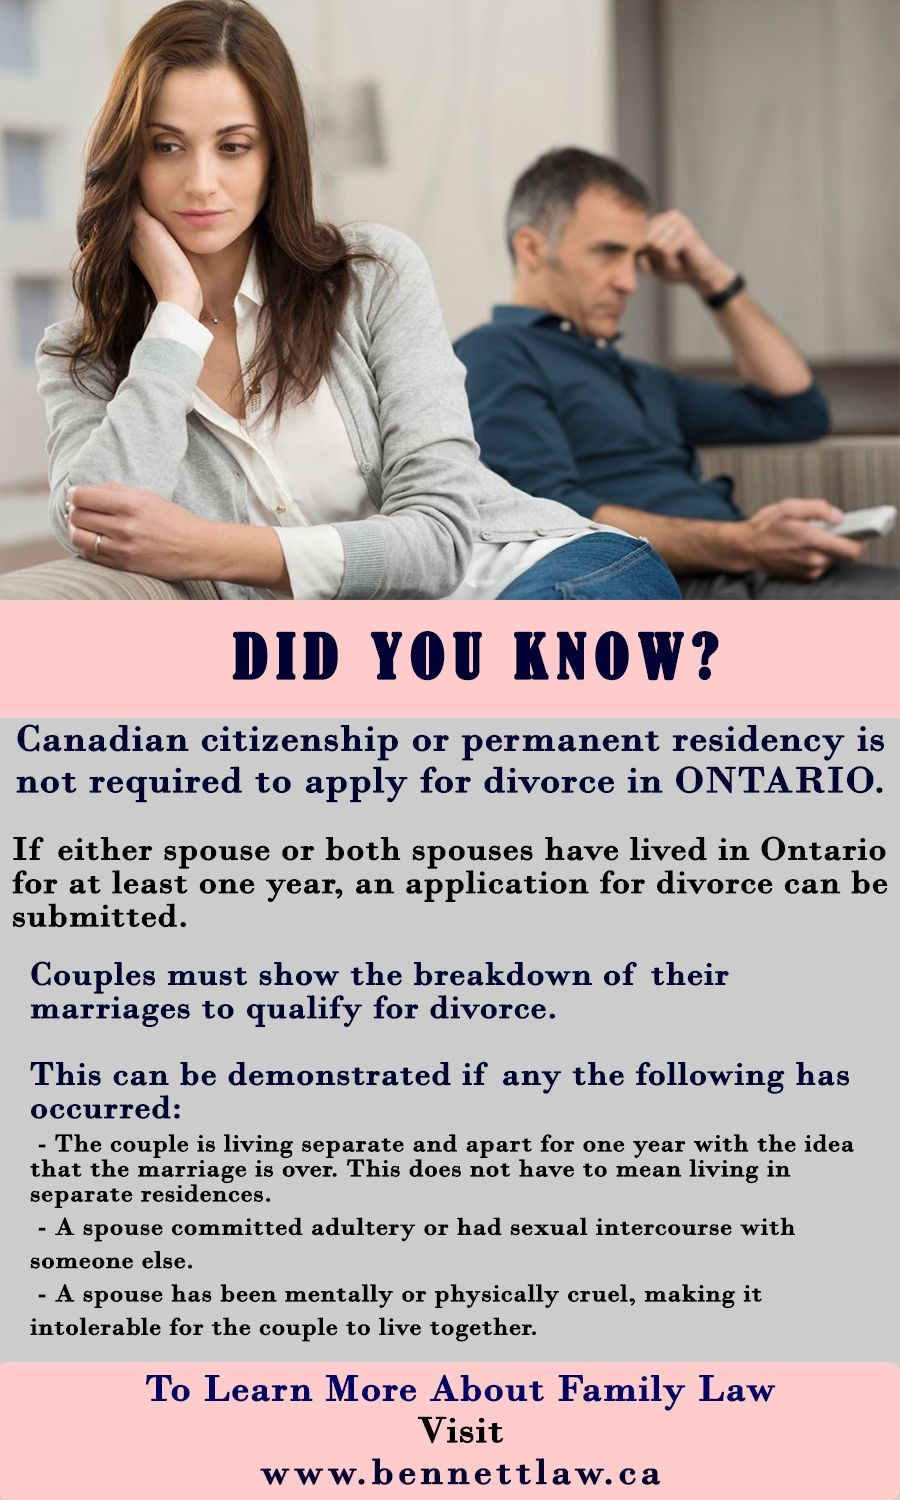 Family law help mississauga understand legal obligation